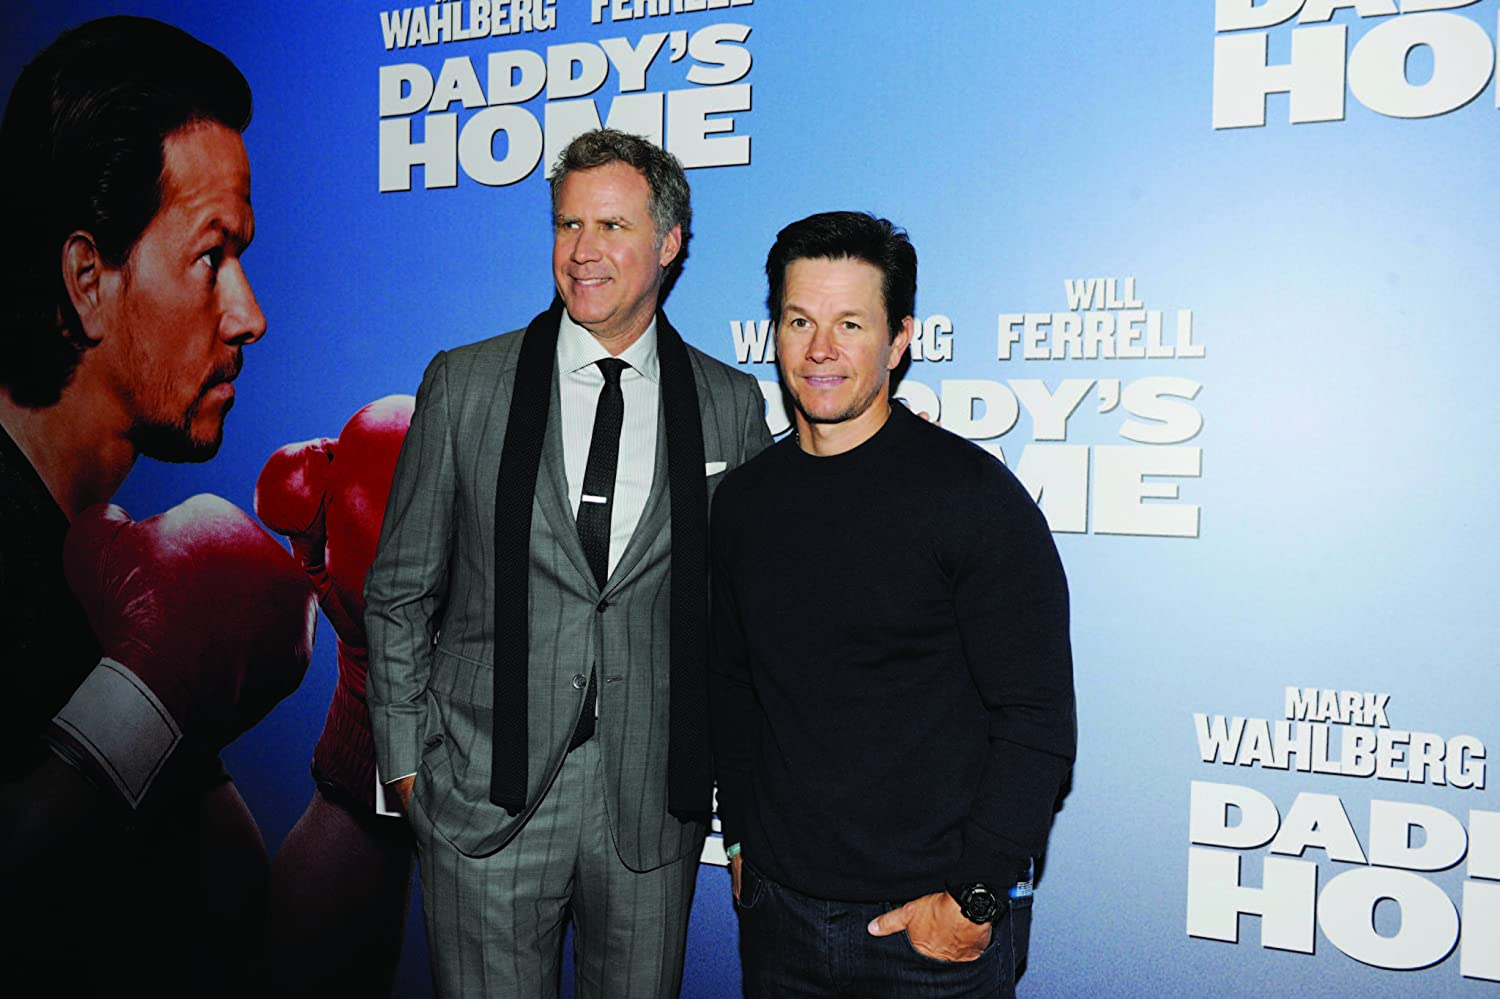 daddys home 2015 download 300mb